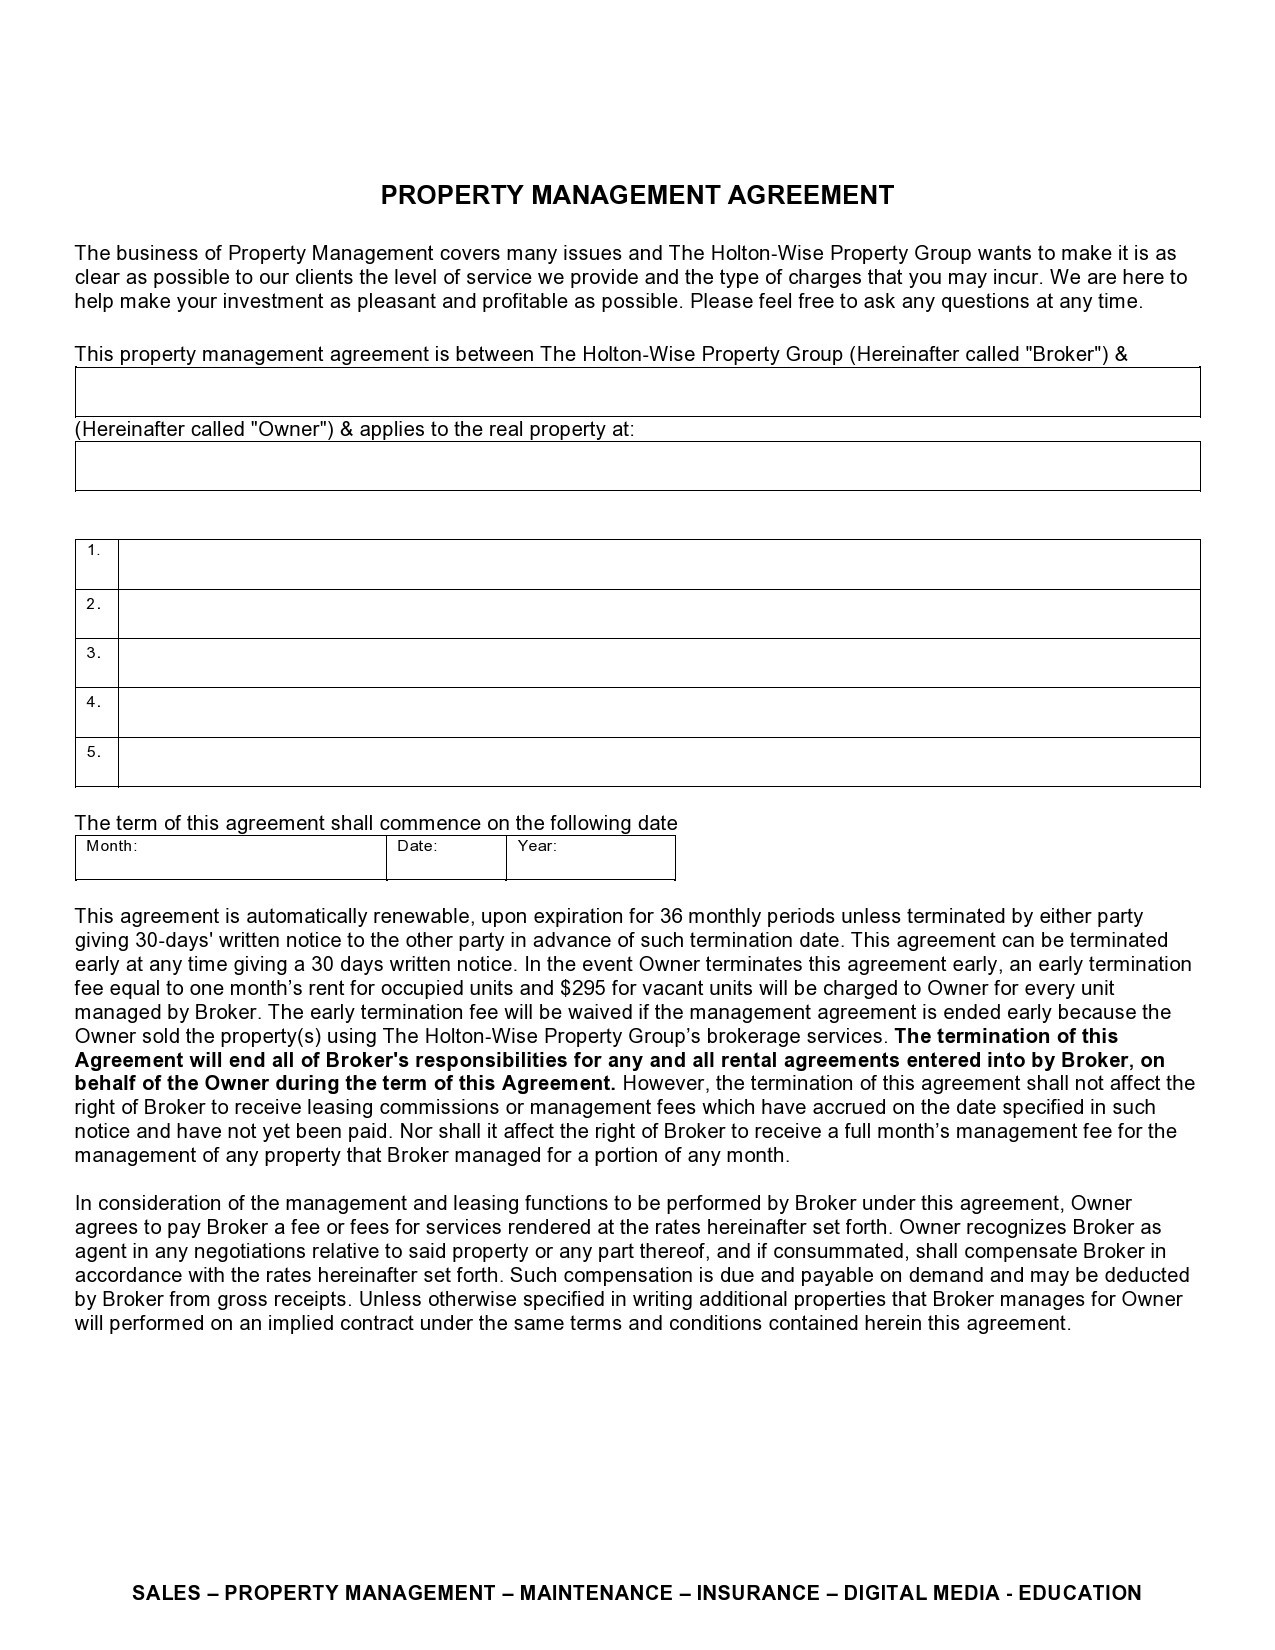 Free property management agreement 42